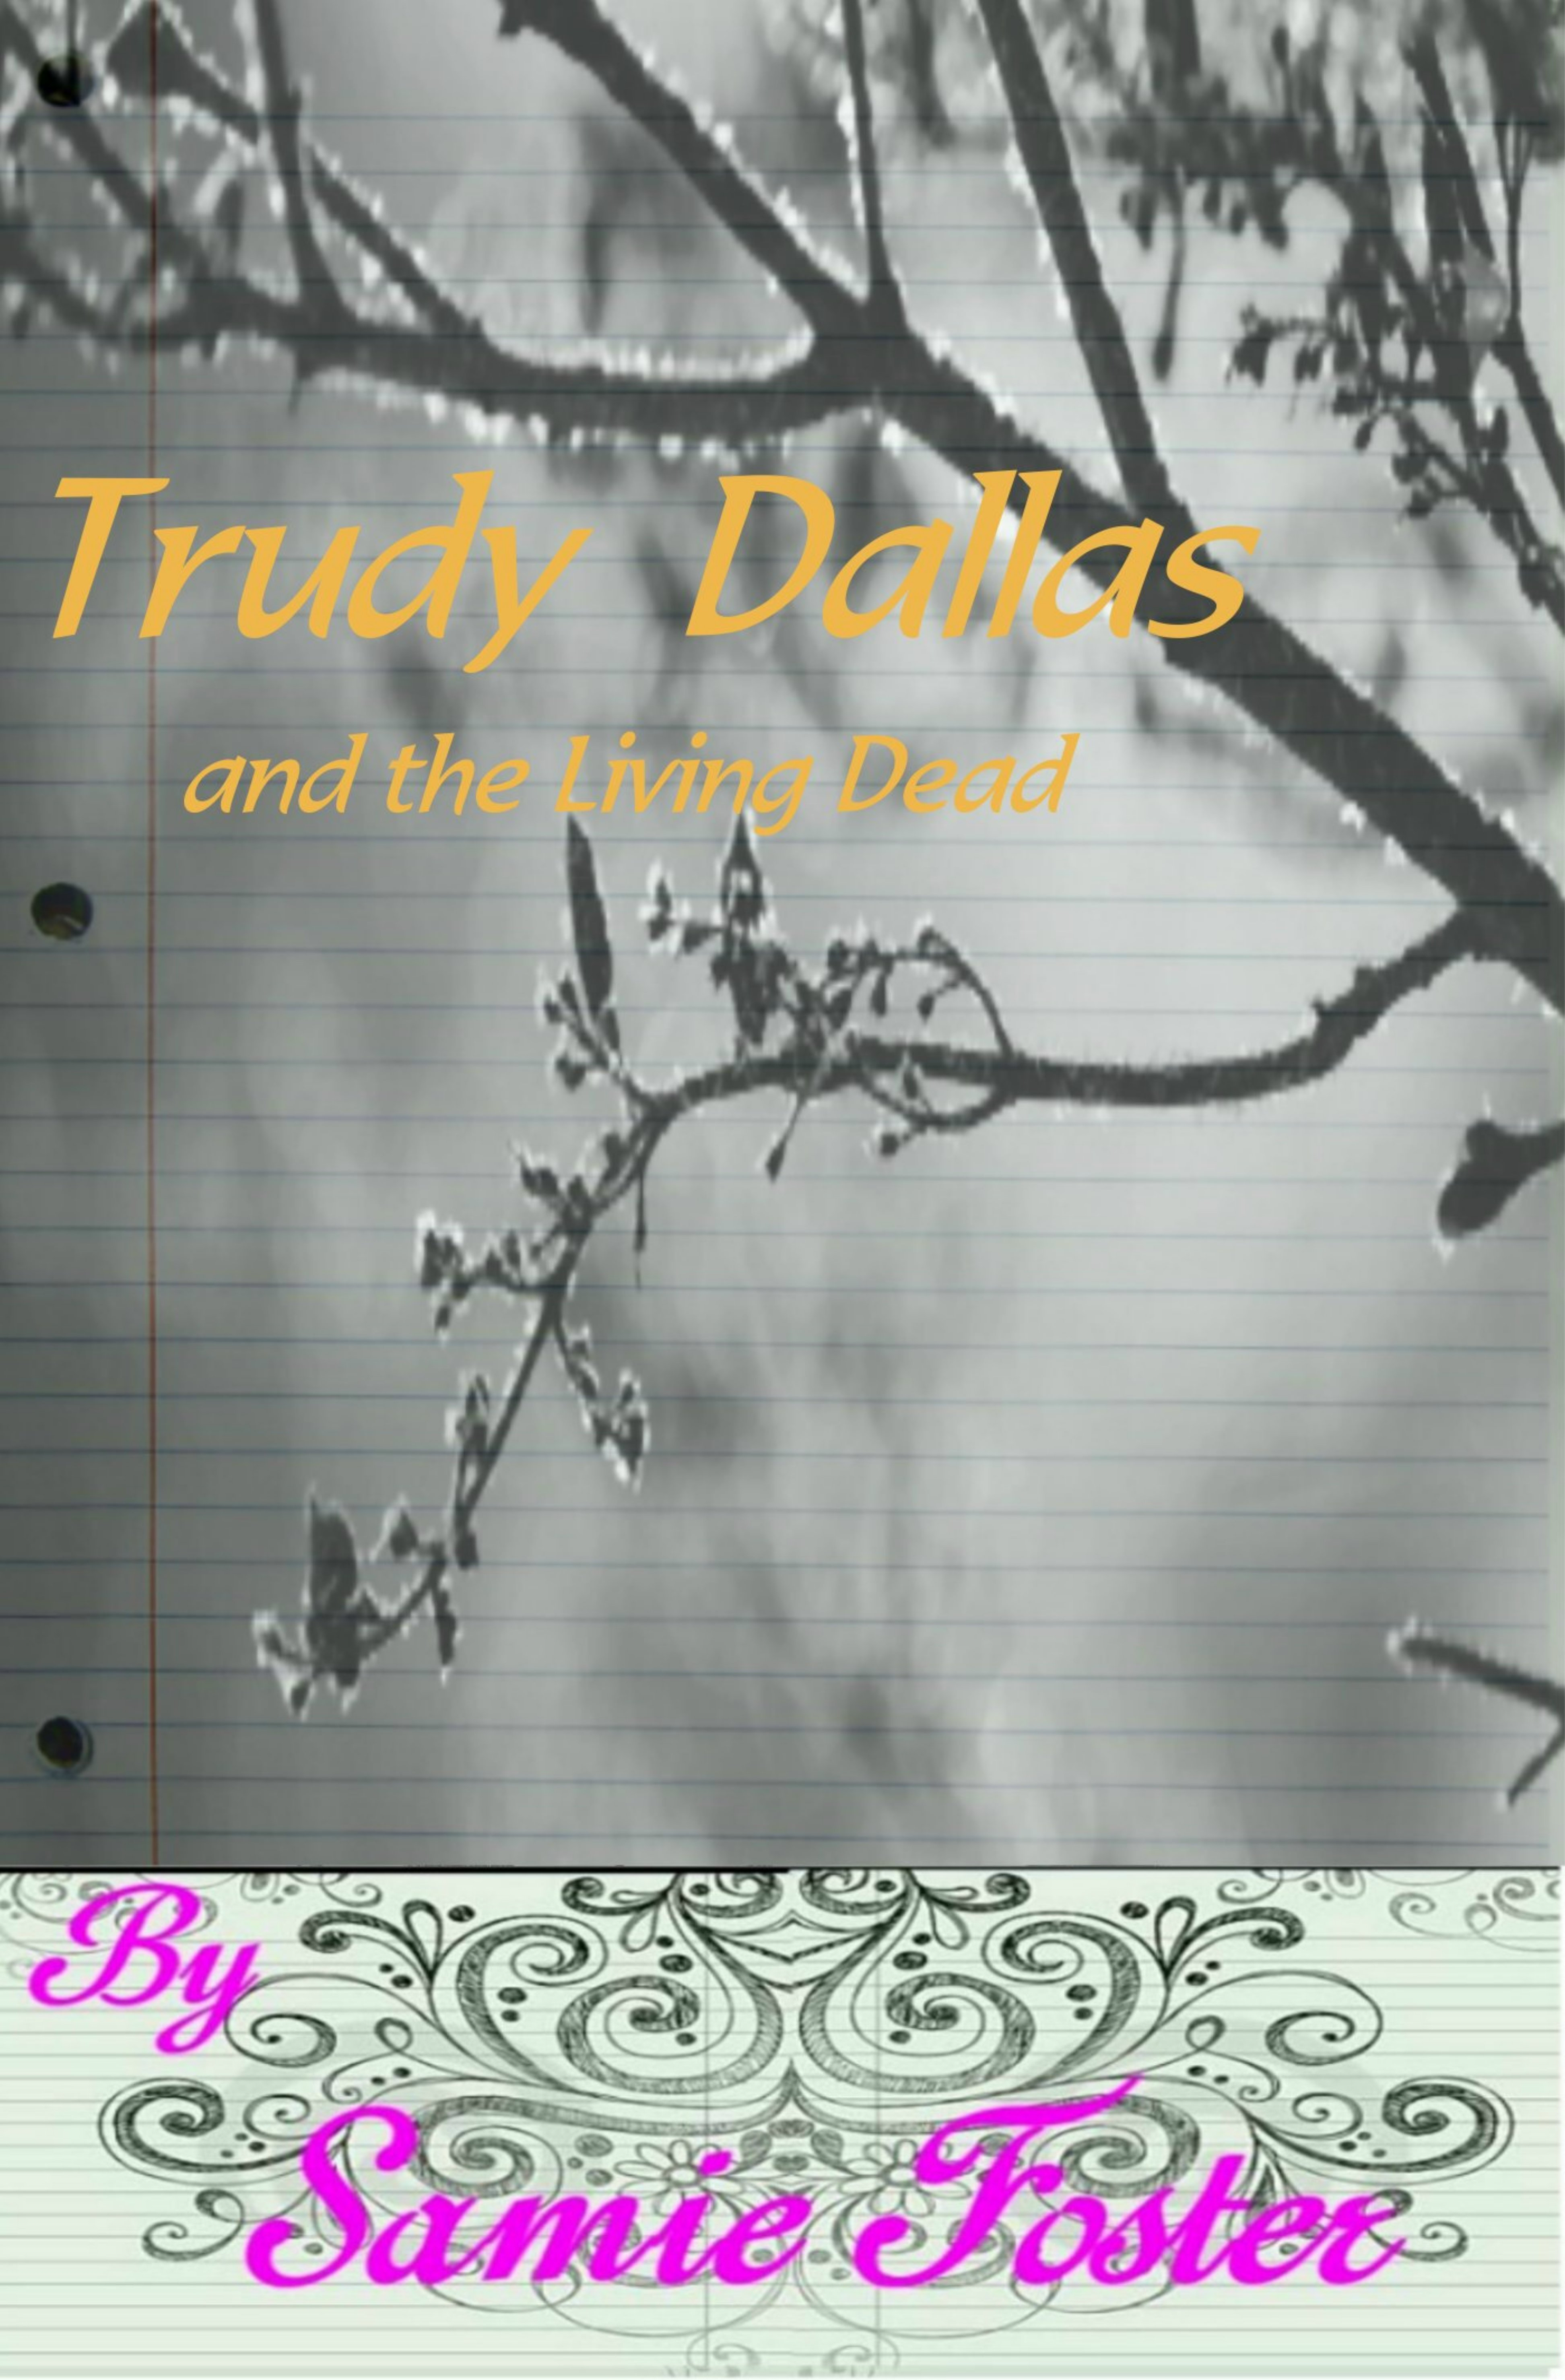 Trudy Dallas and the Living Dead